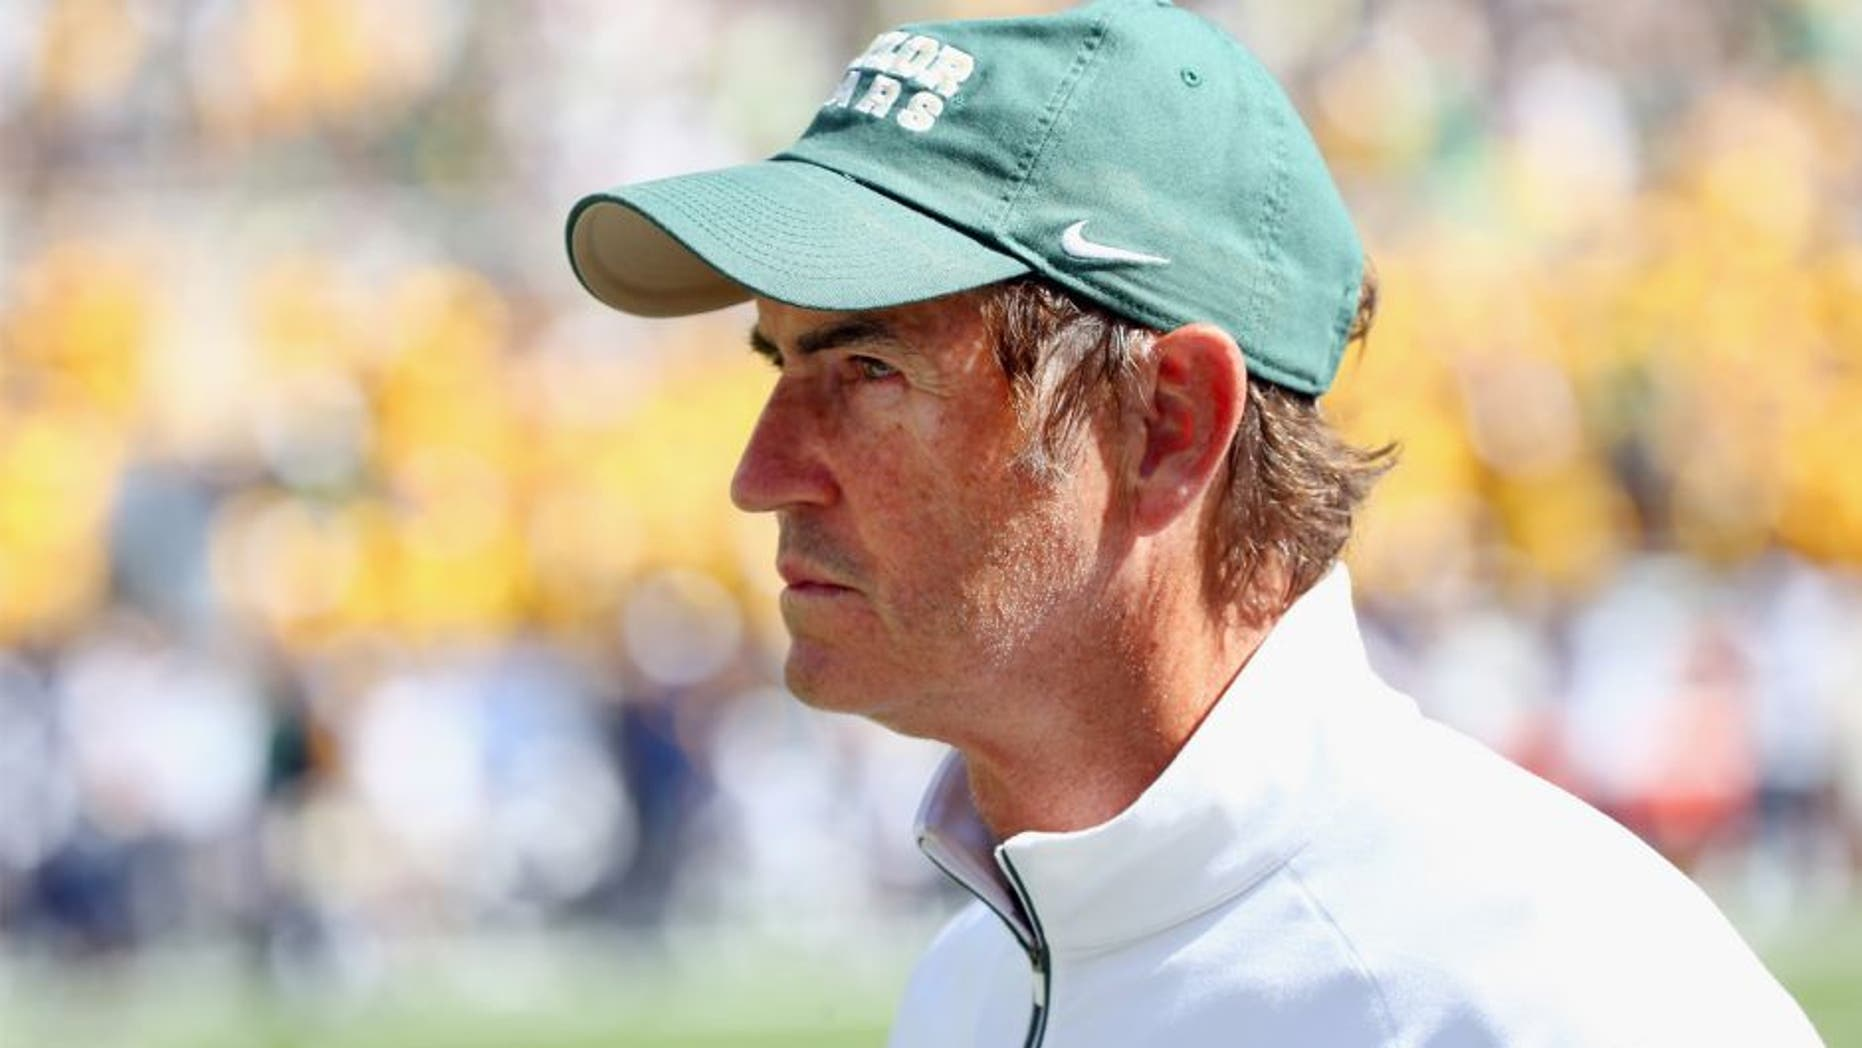 Head coach Art Briles of the Baylor Bears looks on as the Bears take on the West Virginia Mountaineers in the second half at McLane Stadium on October 17, 2015 in Waco, Texas. (Photo by Tom Pennington/Getty Images)